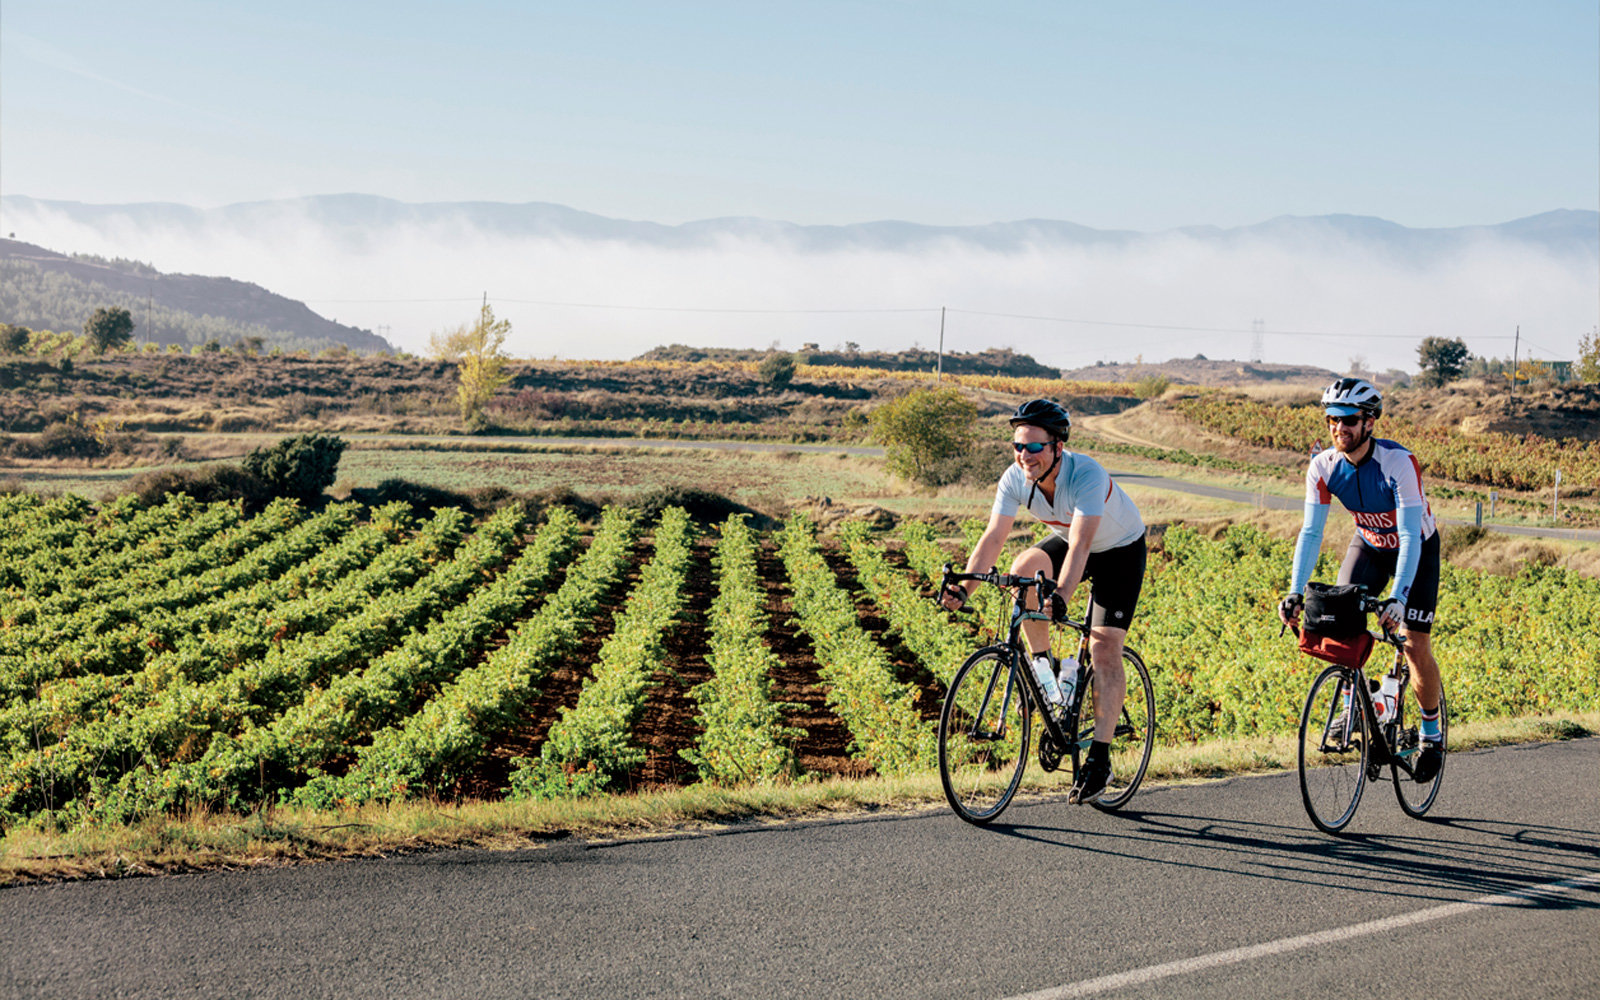 Biking through vineyards in Rioja, Spain